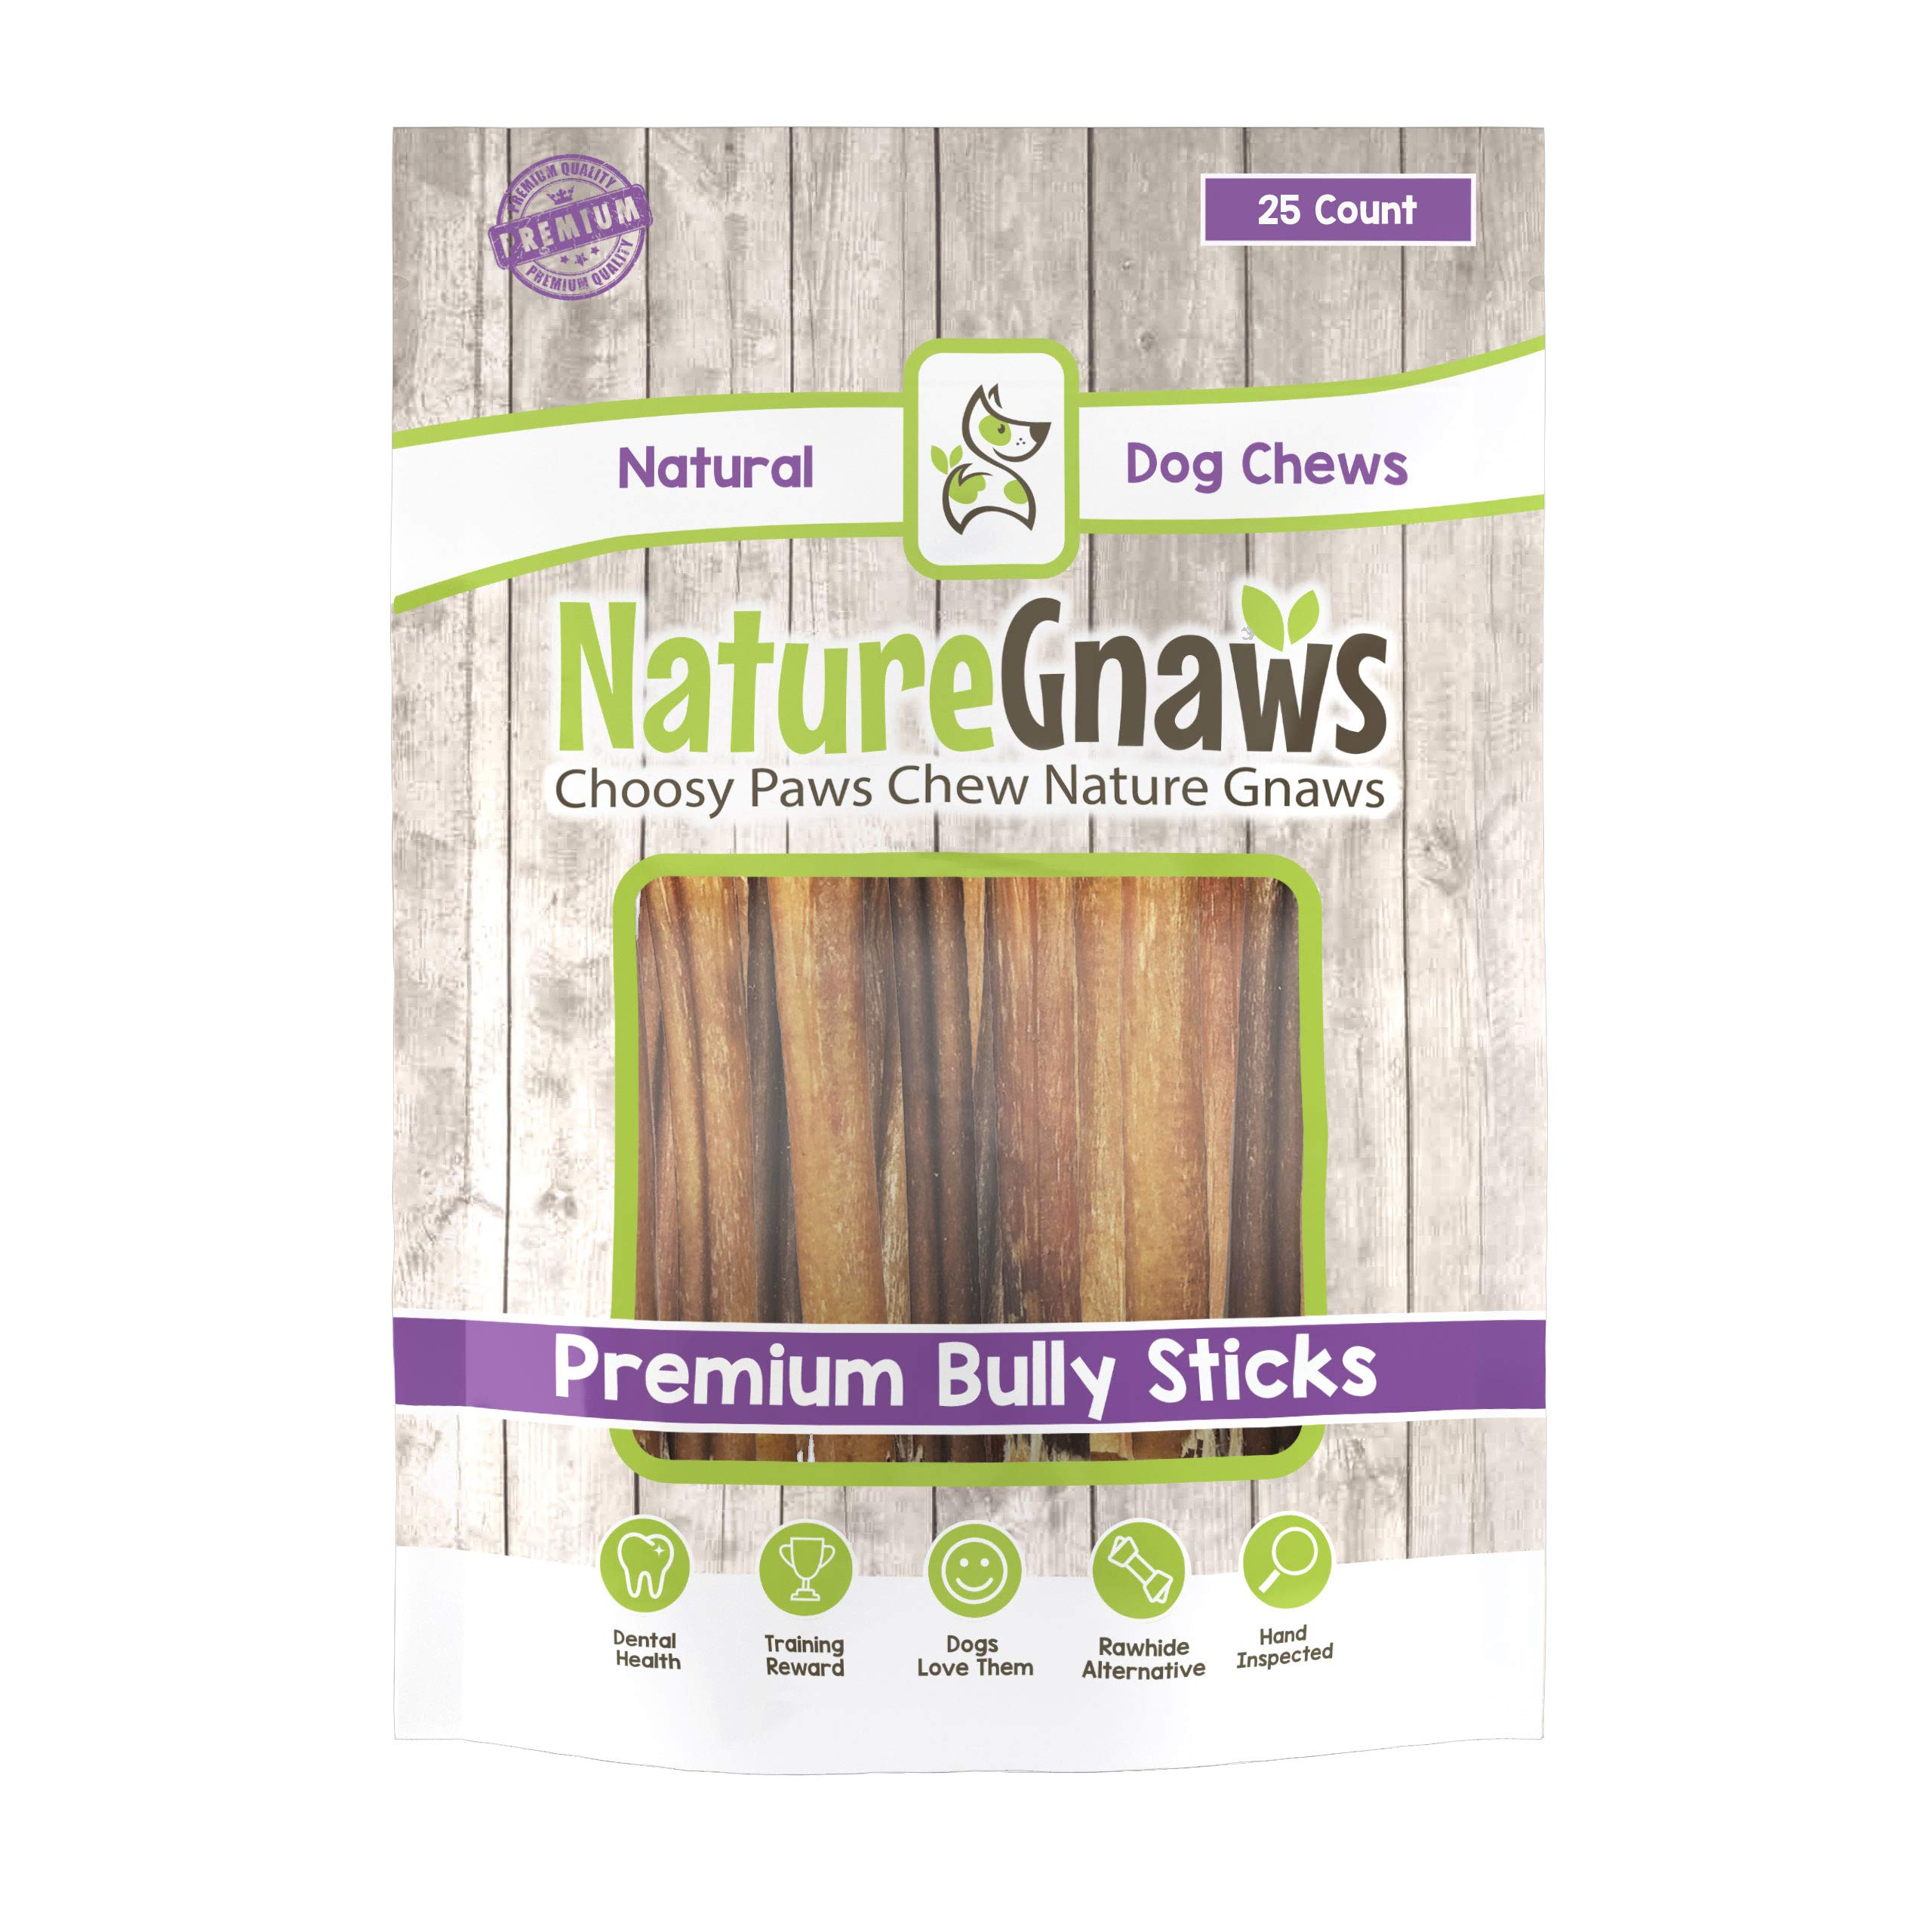 Nature Gnaws Small Bully Sticks (25 Count) - 100% Natural Beef Dog Chews by Nature Gnaws